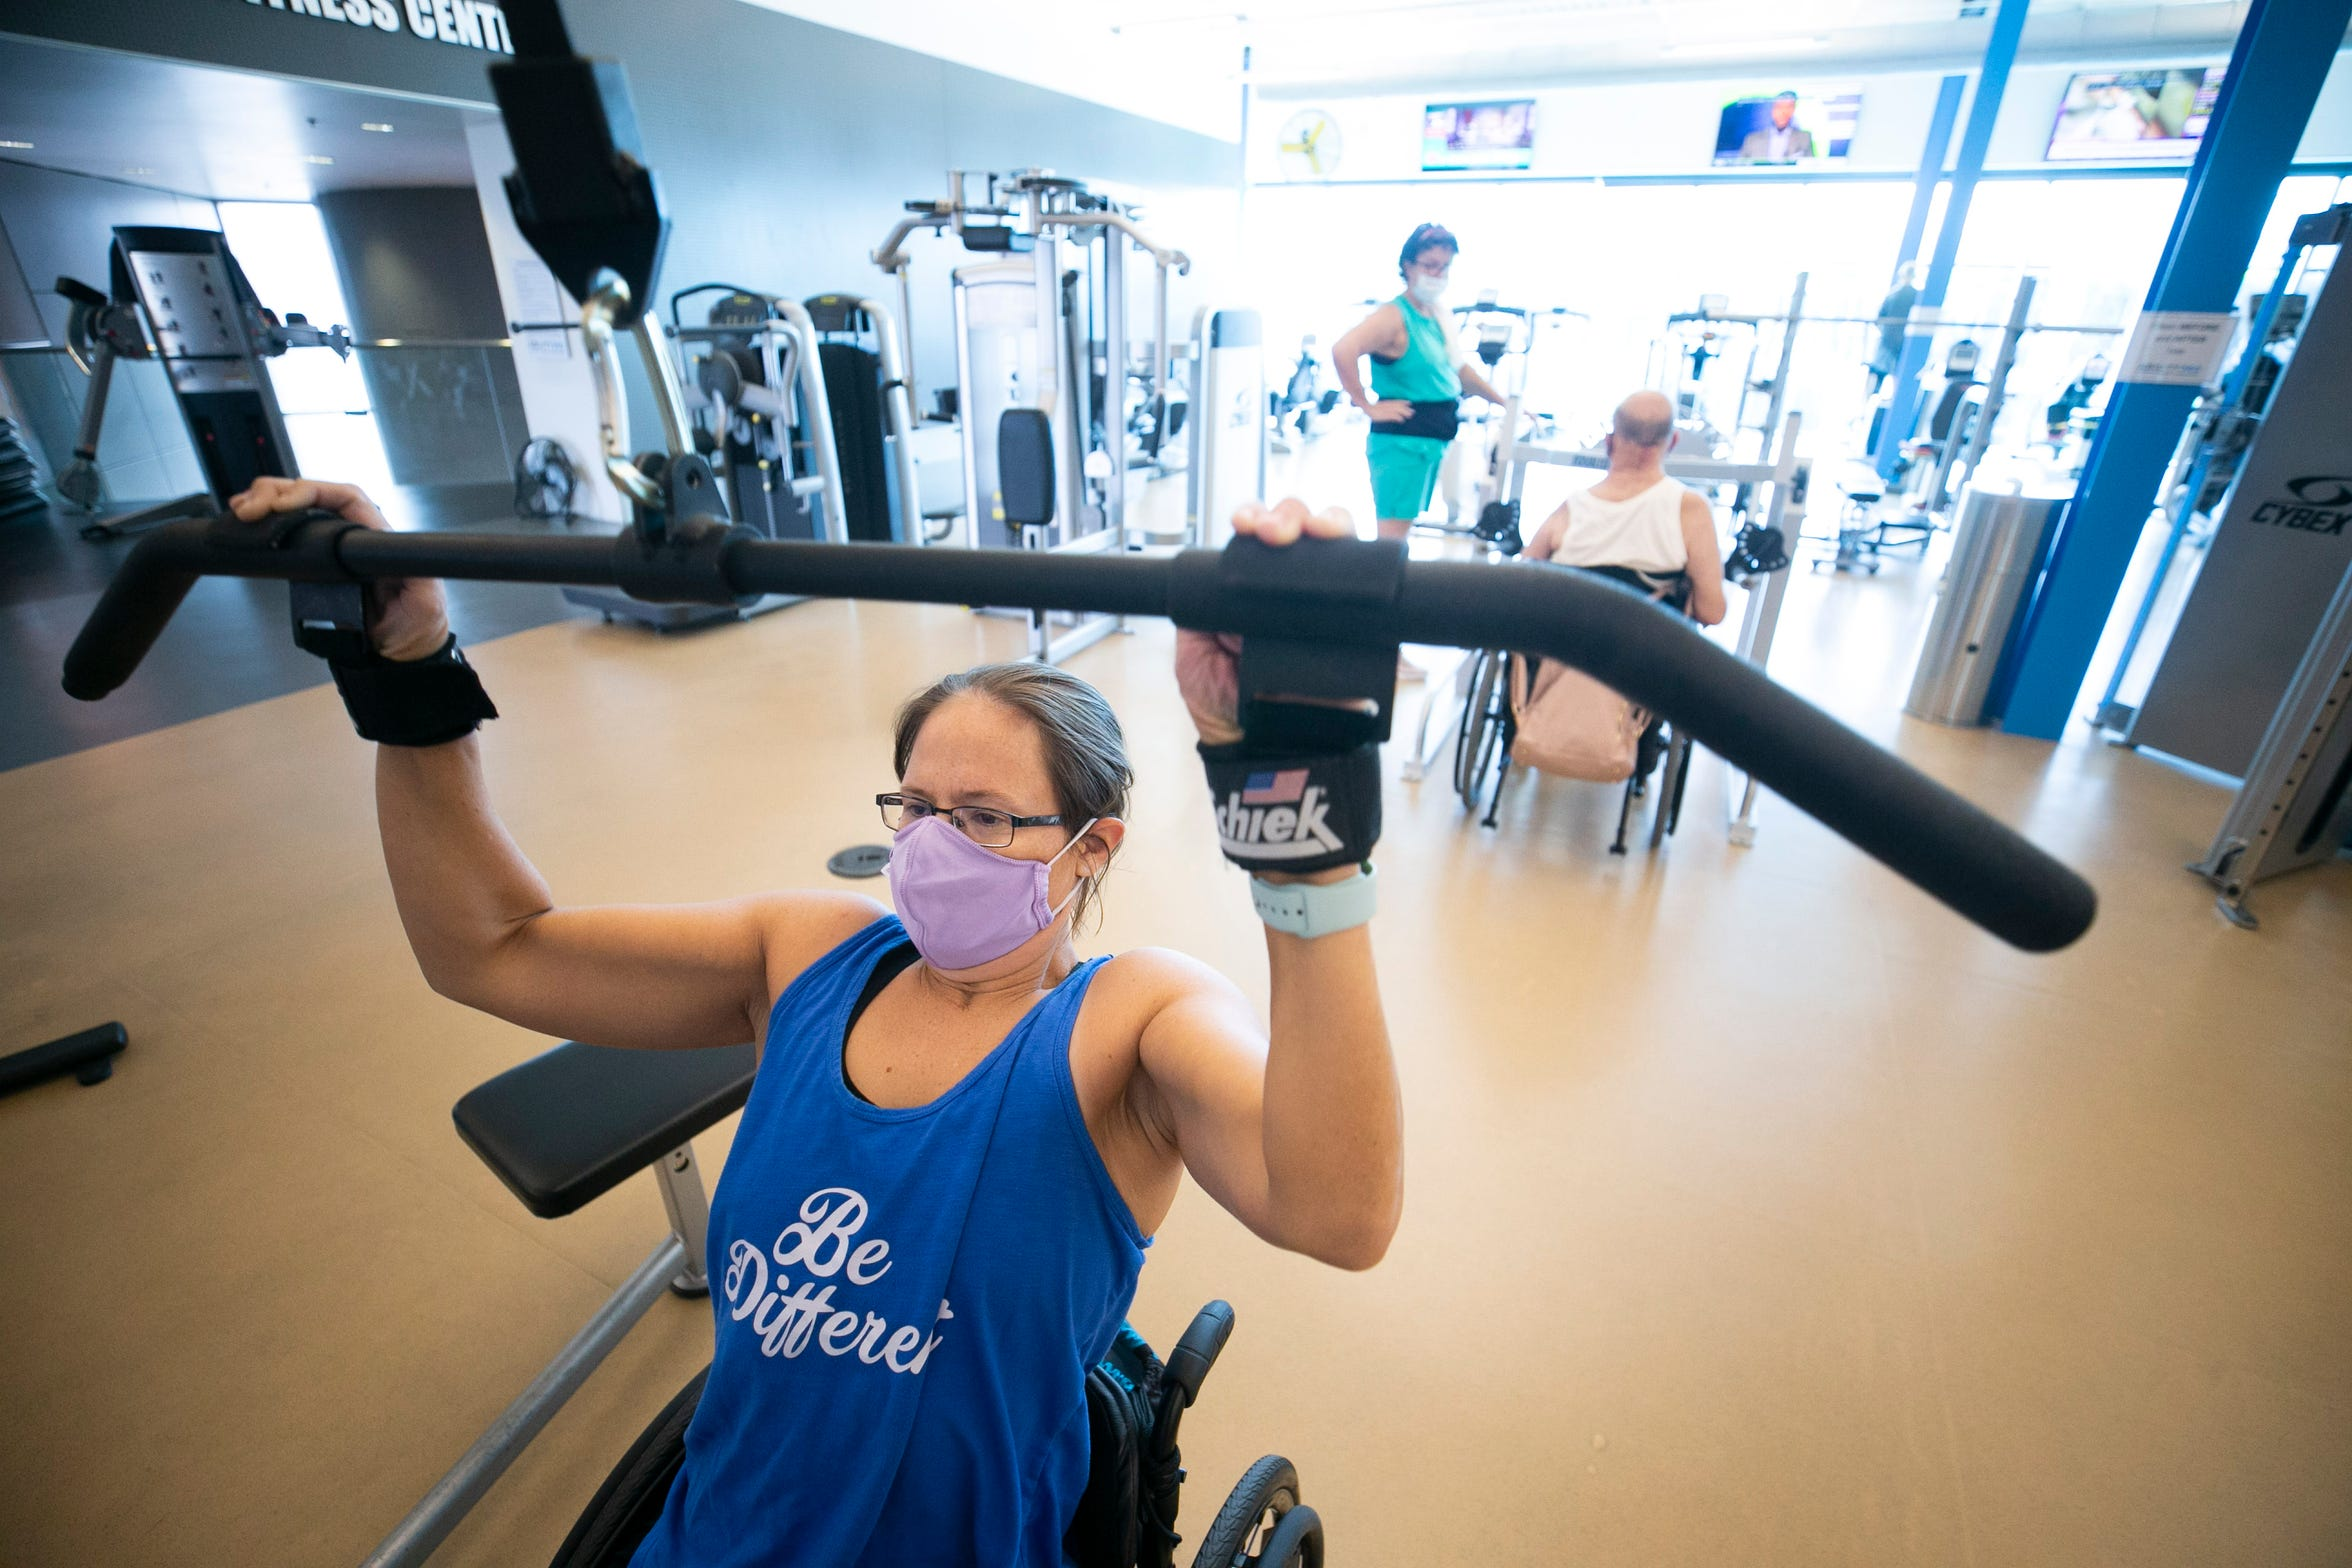 Jen Chaillie, 38, of Tempe, who is paralyzed from the chest down, lifts weights, at Ability360, a Phoenix fitness and community center for people with disabilities, on Sept. 22, 2020.